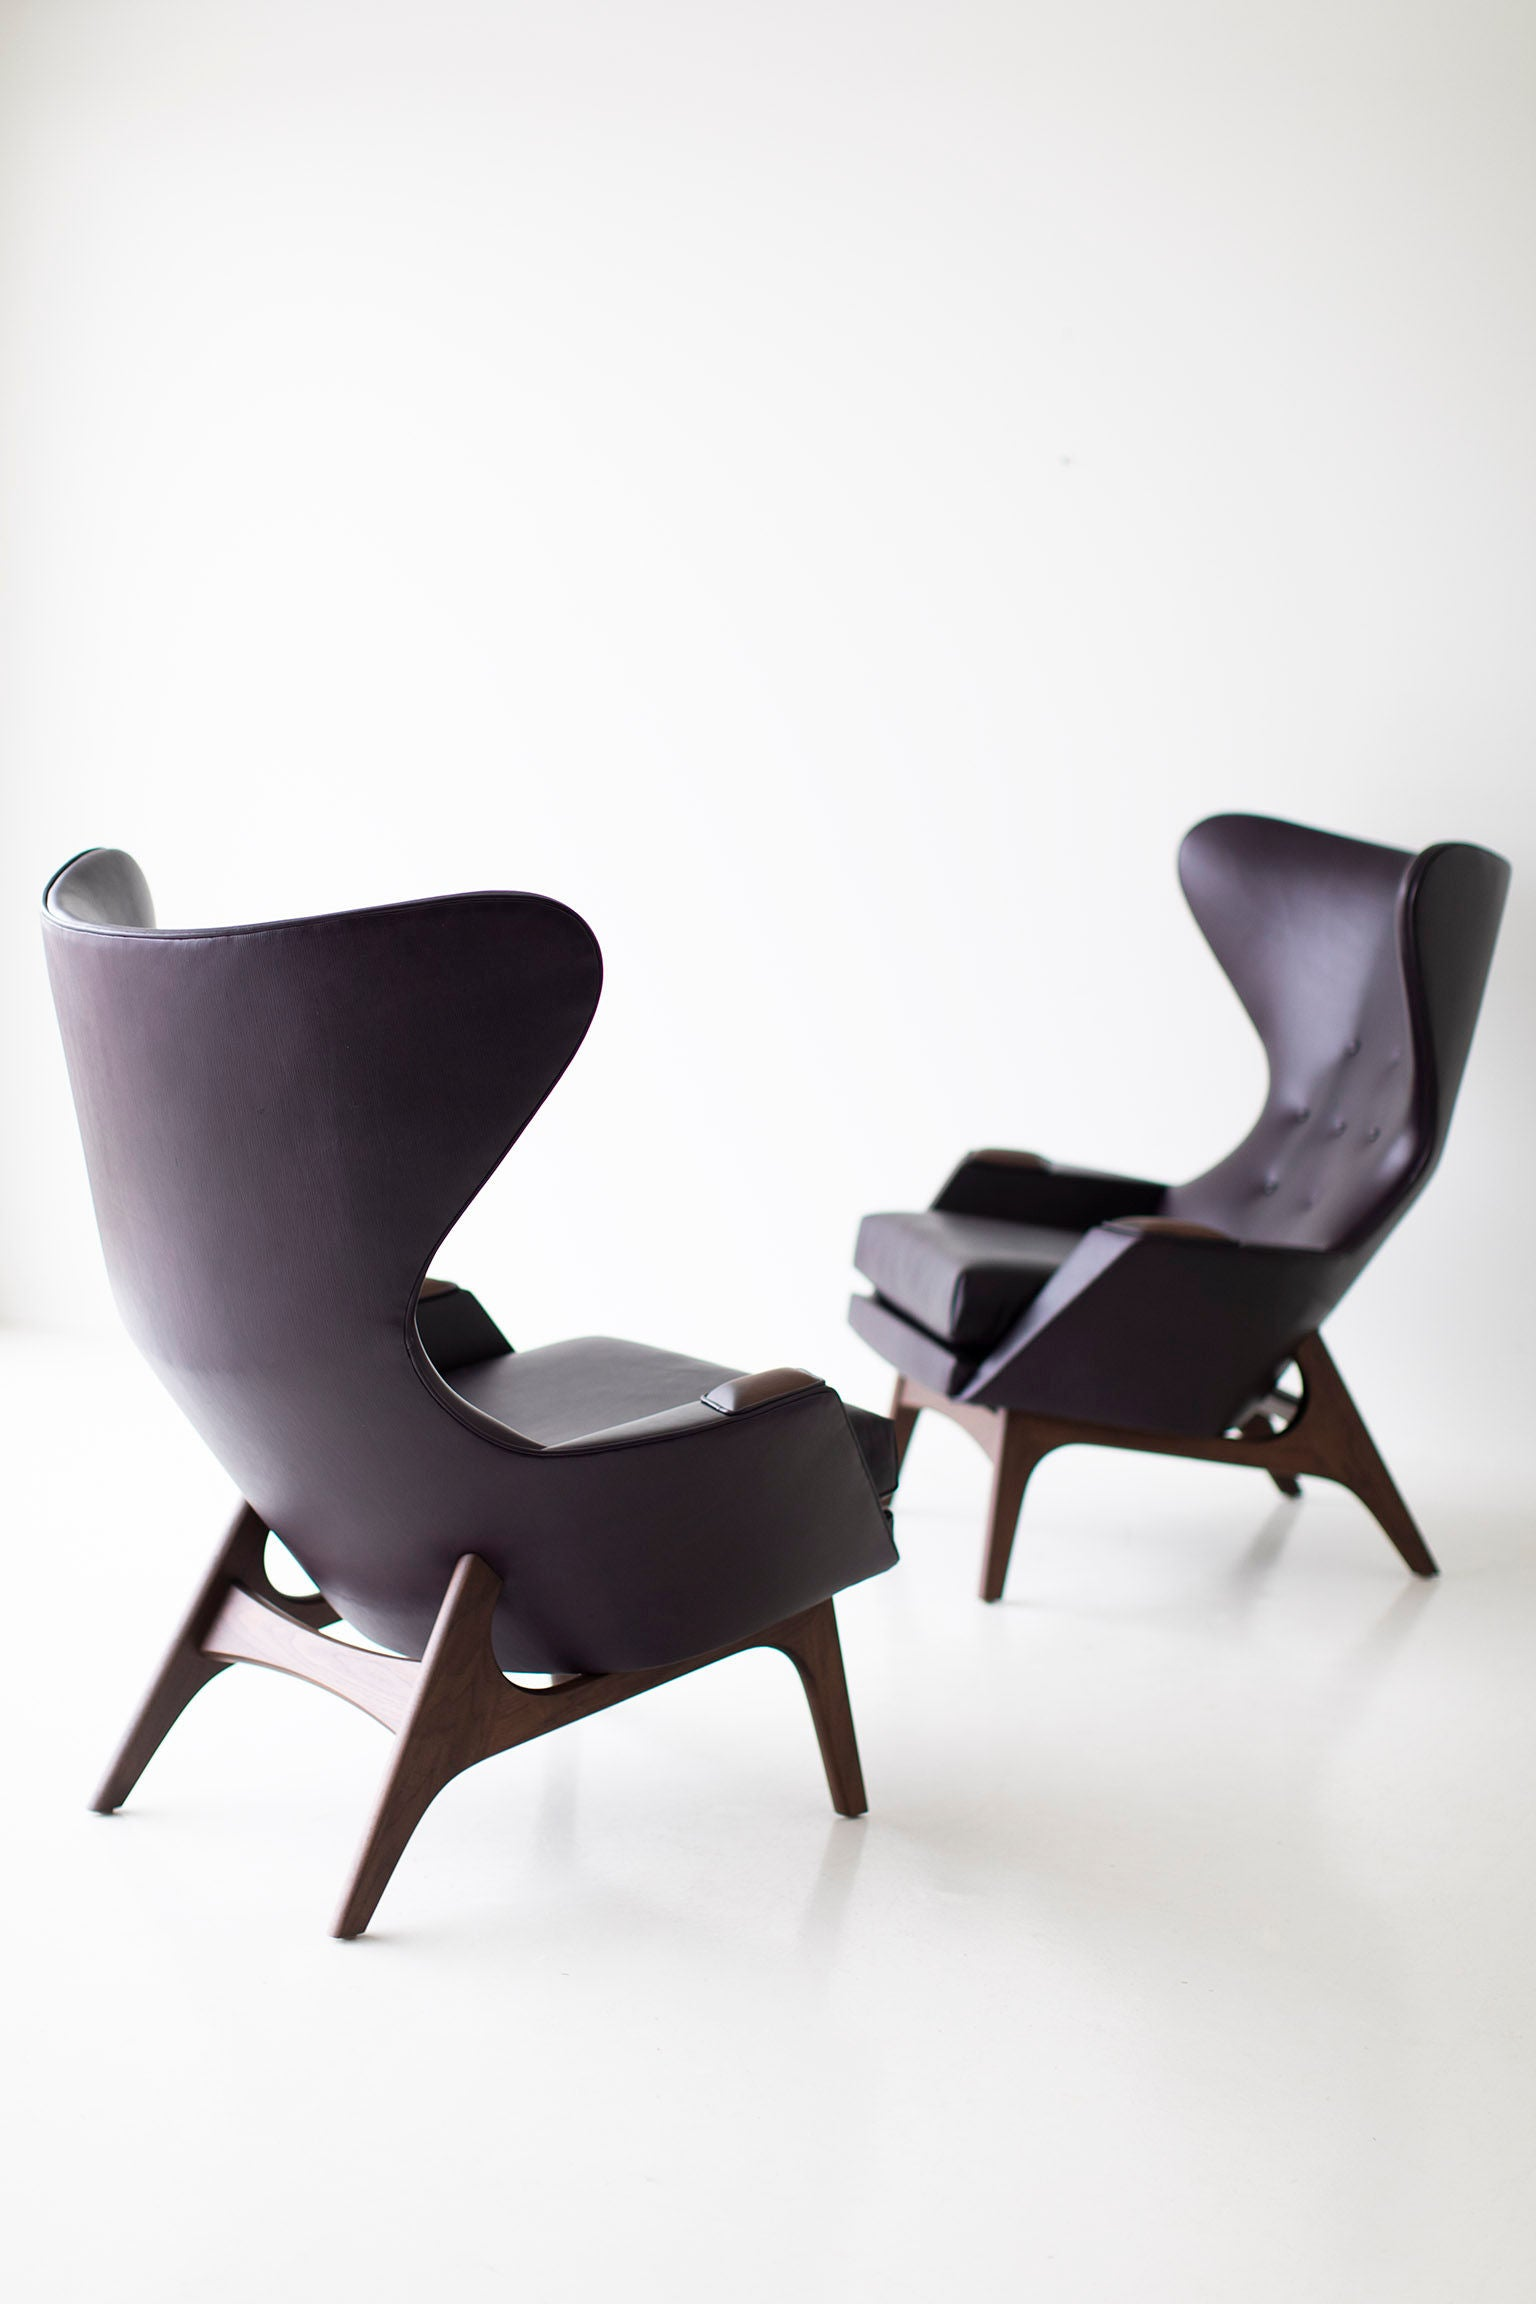 0T3A9981-large-leather-wing-chairs-1407-01